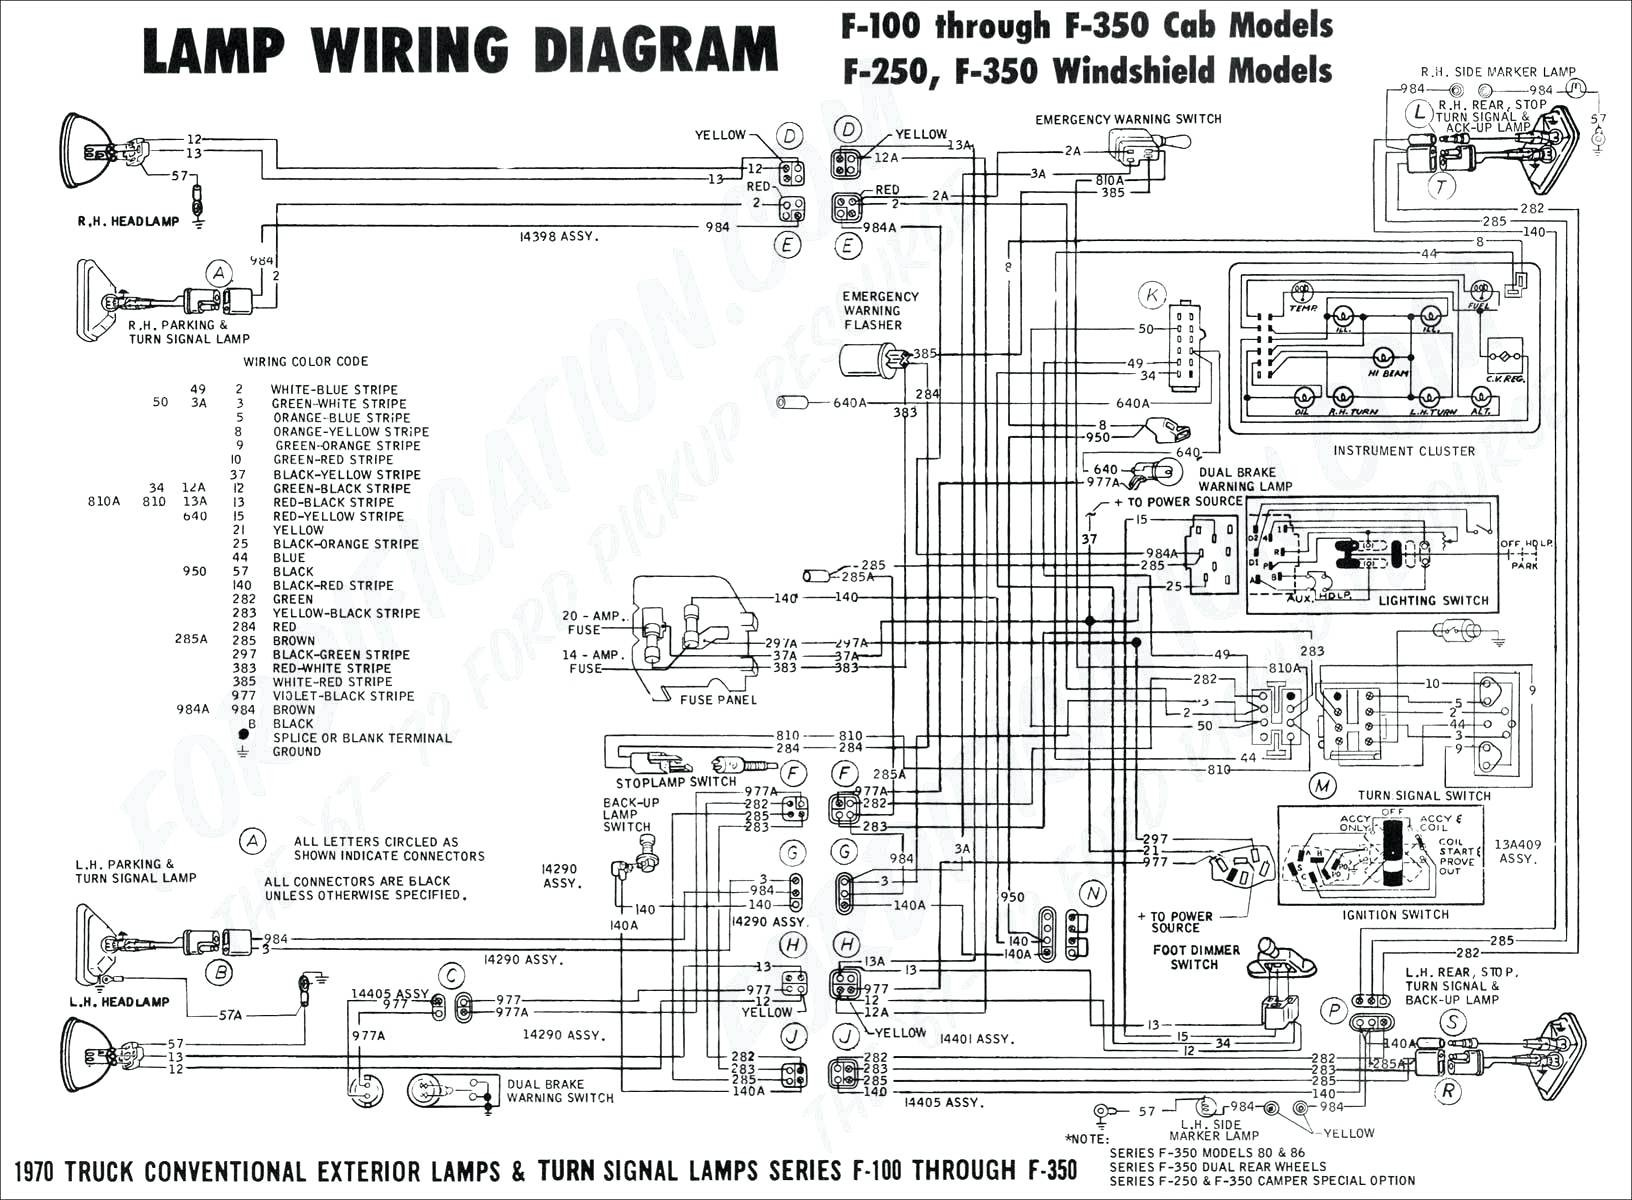 honeywell 7400 thermostat wiring diagram wiring library2001 ford ranger 4x4 wiring diagram detailed schematics diagram rh jvpacks com